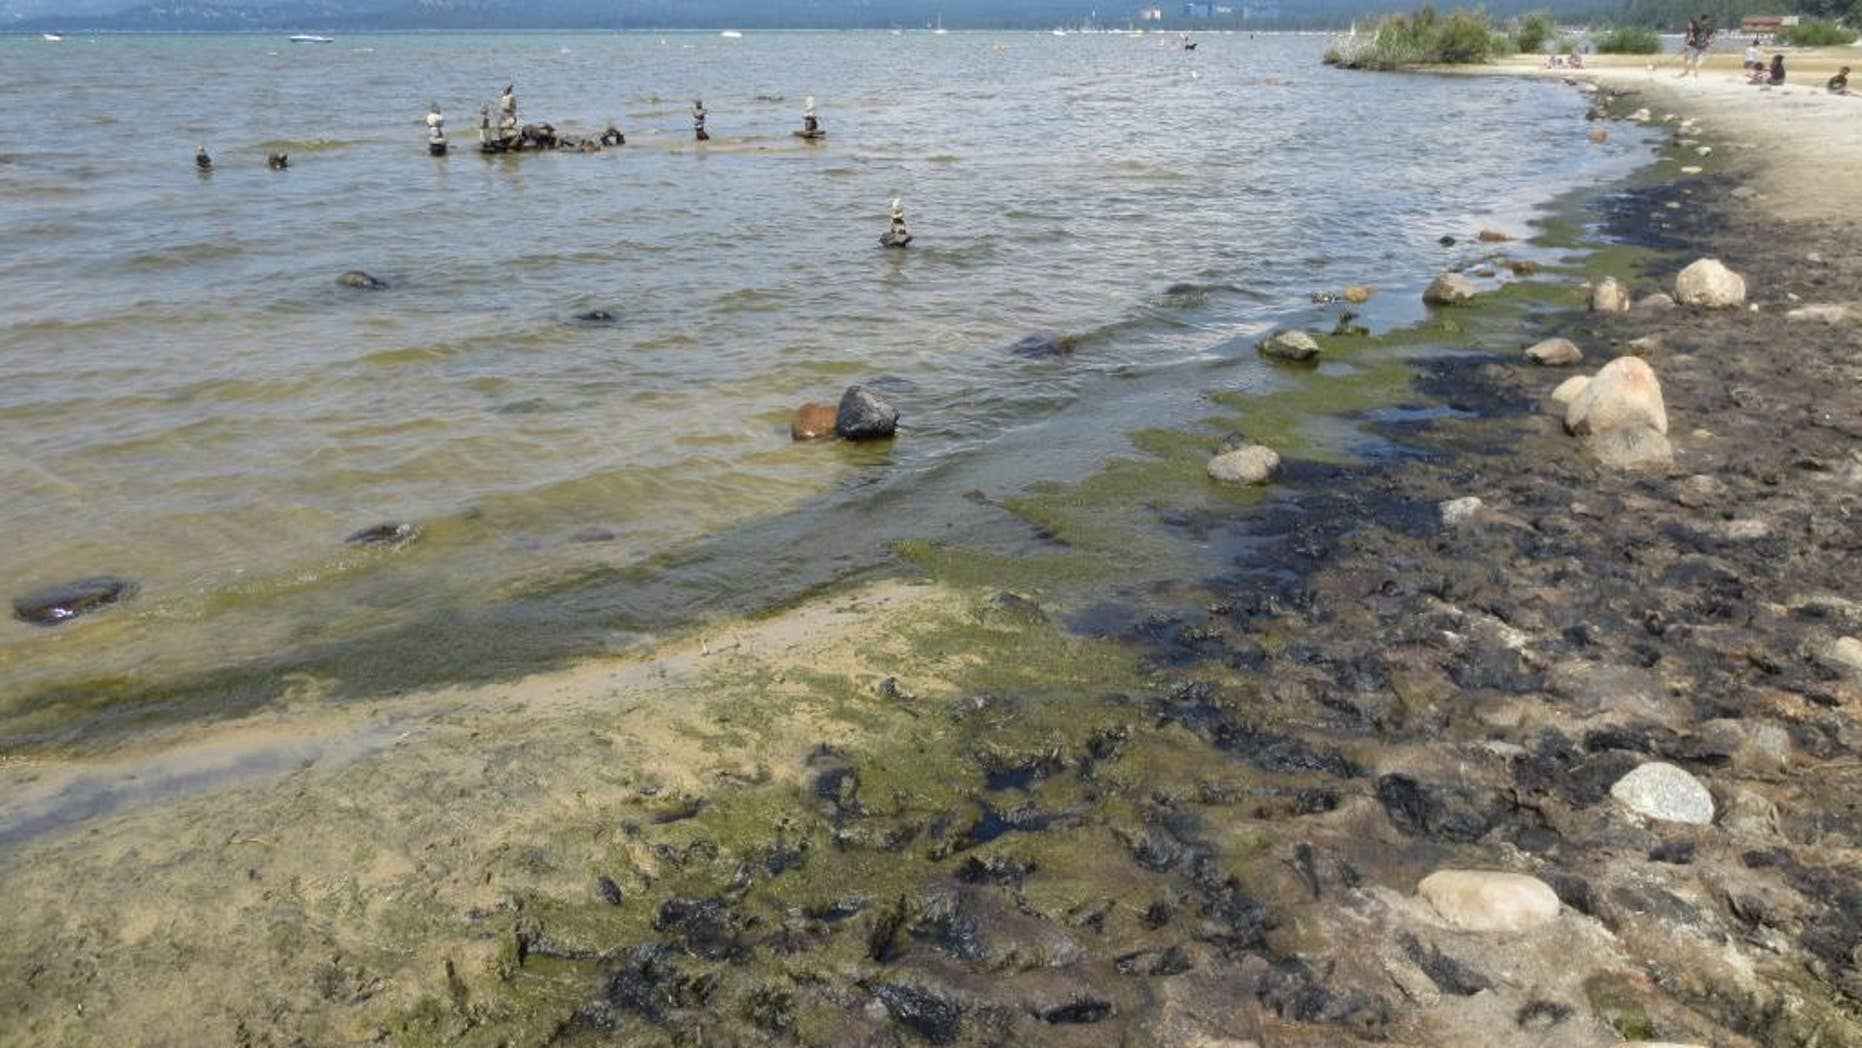 In this Aug. 2014 photo, algae growing along the south shore of Lake Tahoe is seen at Regan Beach in South Lake Tahoe, Calif. The UC Davis Tahoe Environmental Research Center is seeking personal photographs of shore-side algae in past decades to supplement limited scientific data about historic algae growth in the mountain lake. (Scott Hackley/UC Davis Tahoe Environmental Research Center via AP)